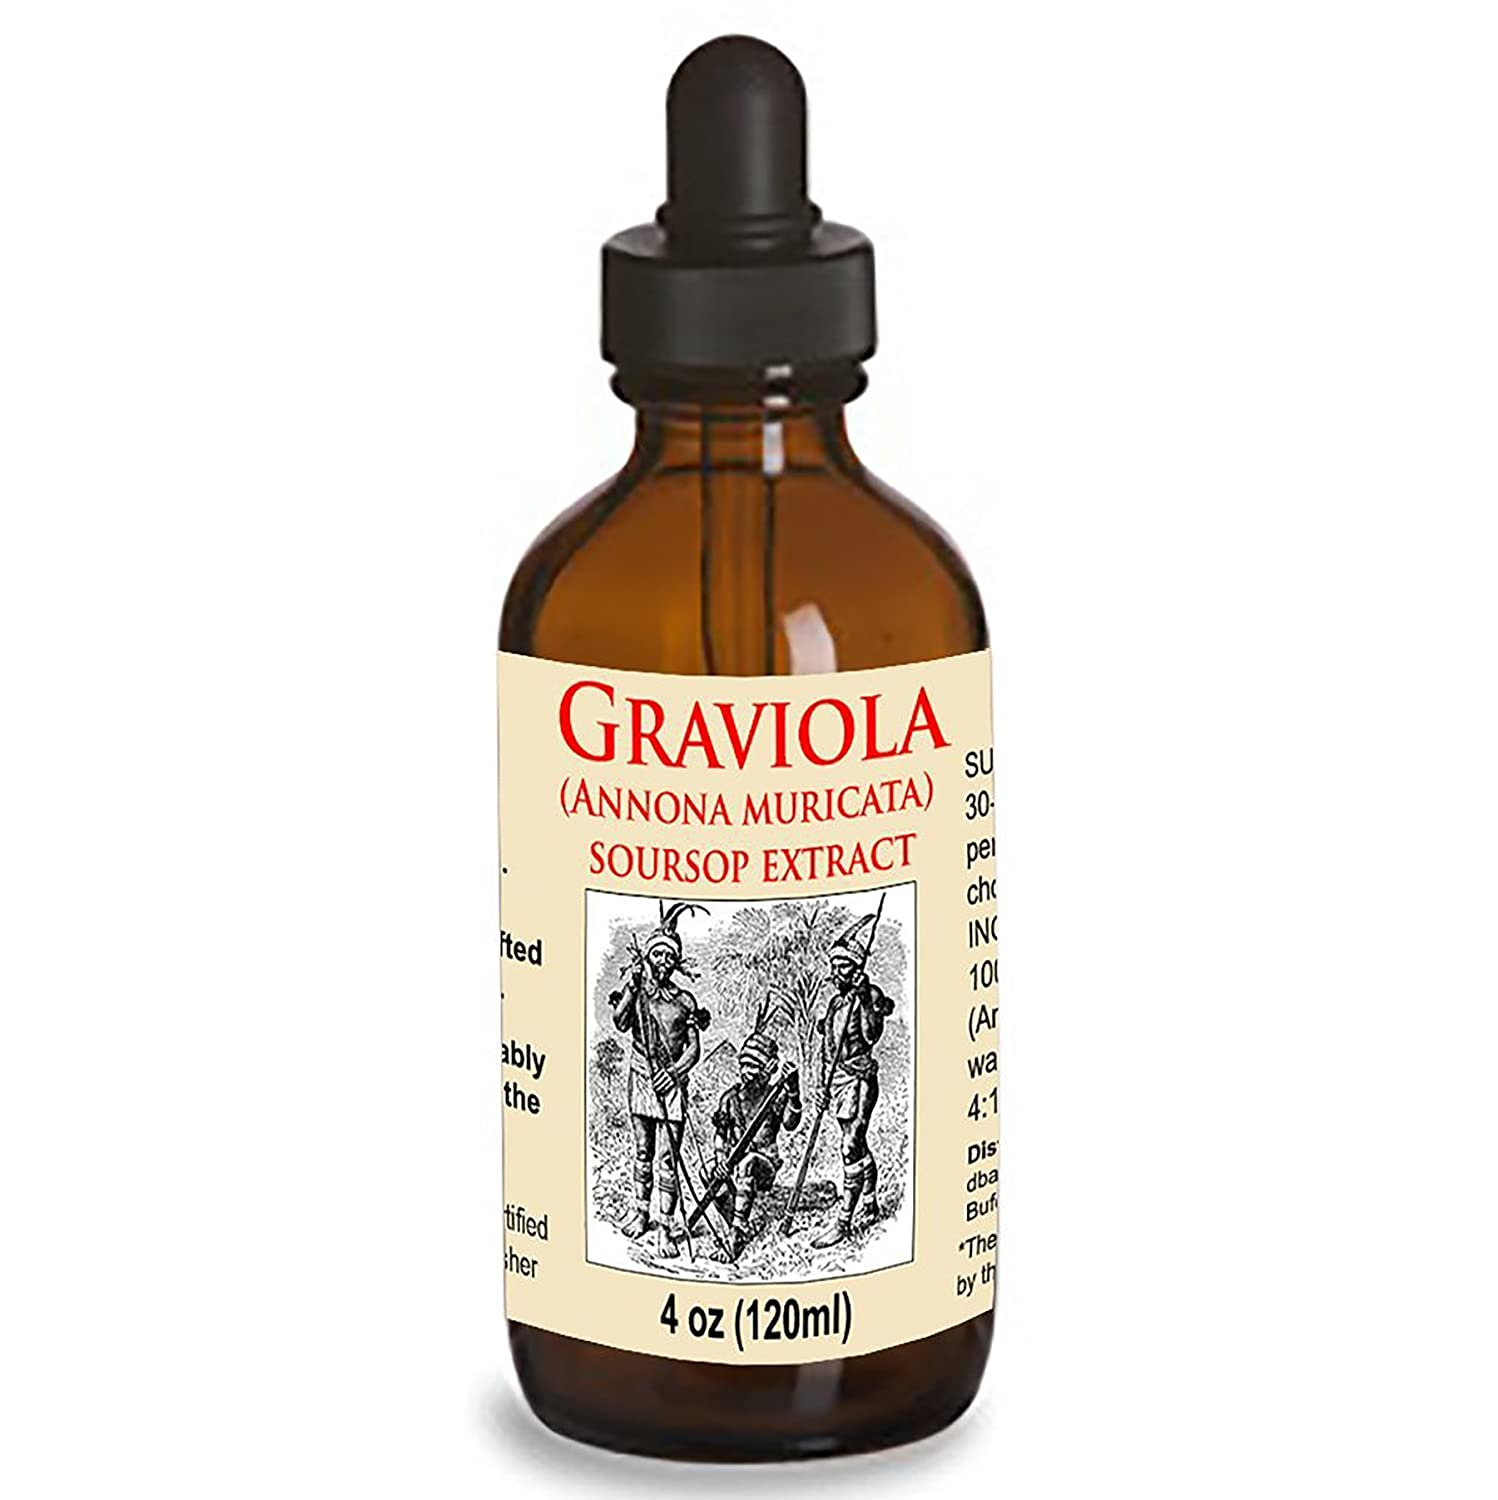 Organic Graviola Liquid Soursop Extract 4 oz Wildcrafted Tincture Annona Muricata Immune System Booster 4oz